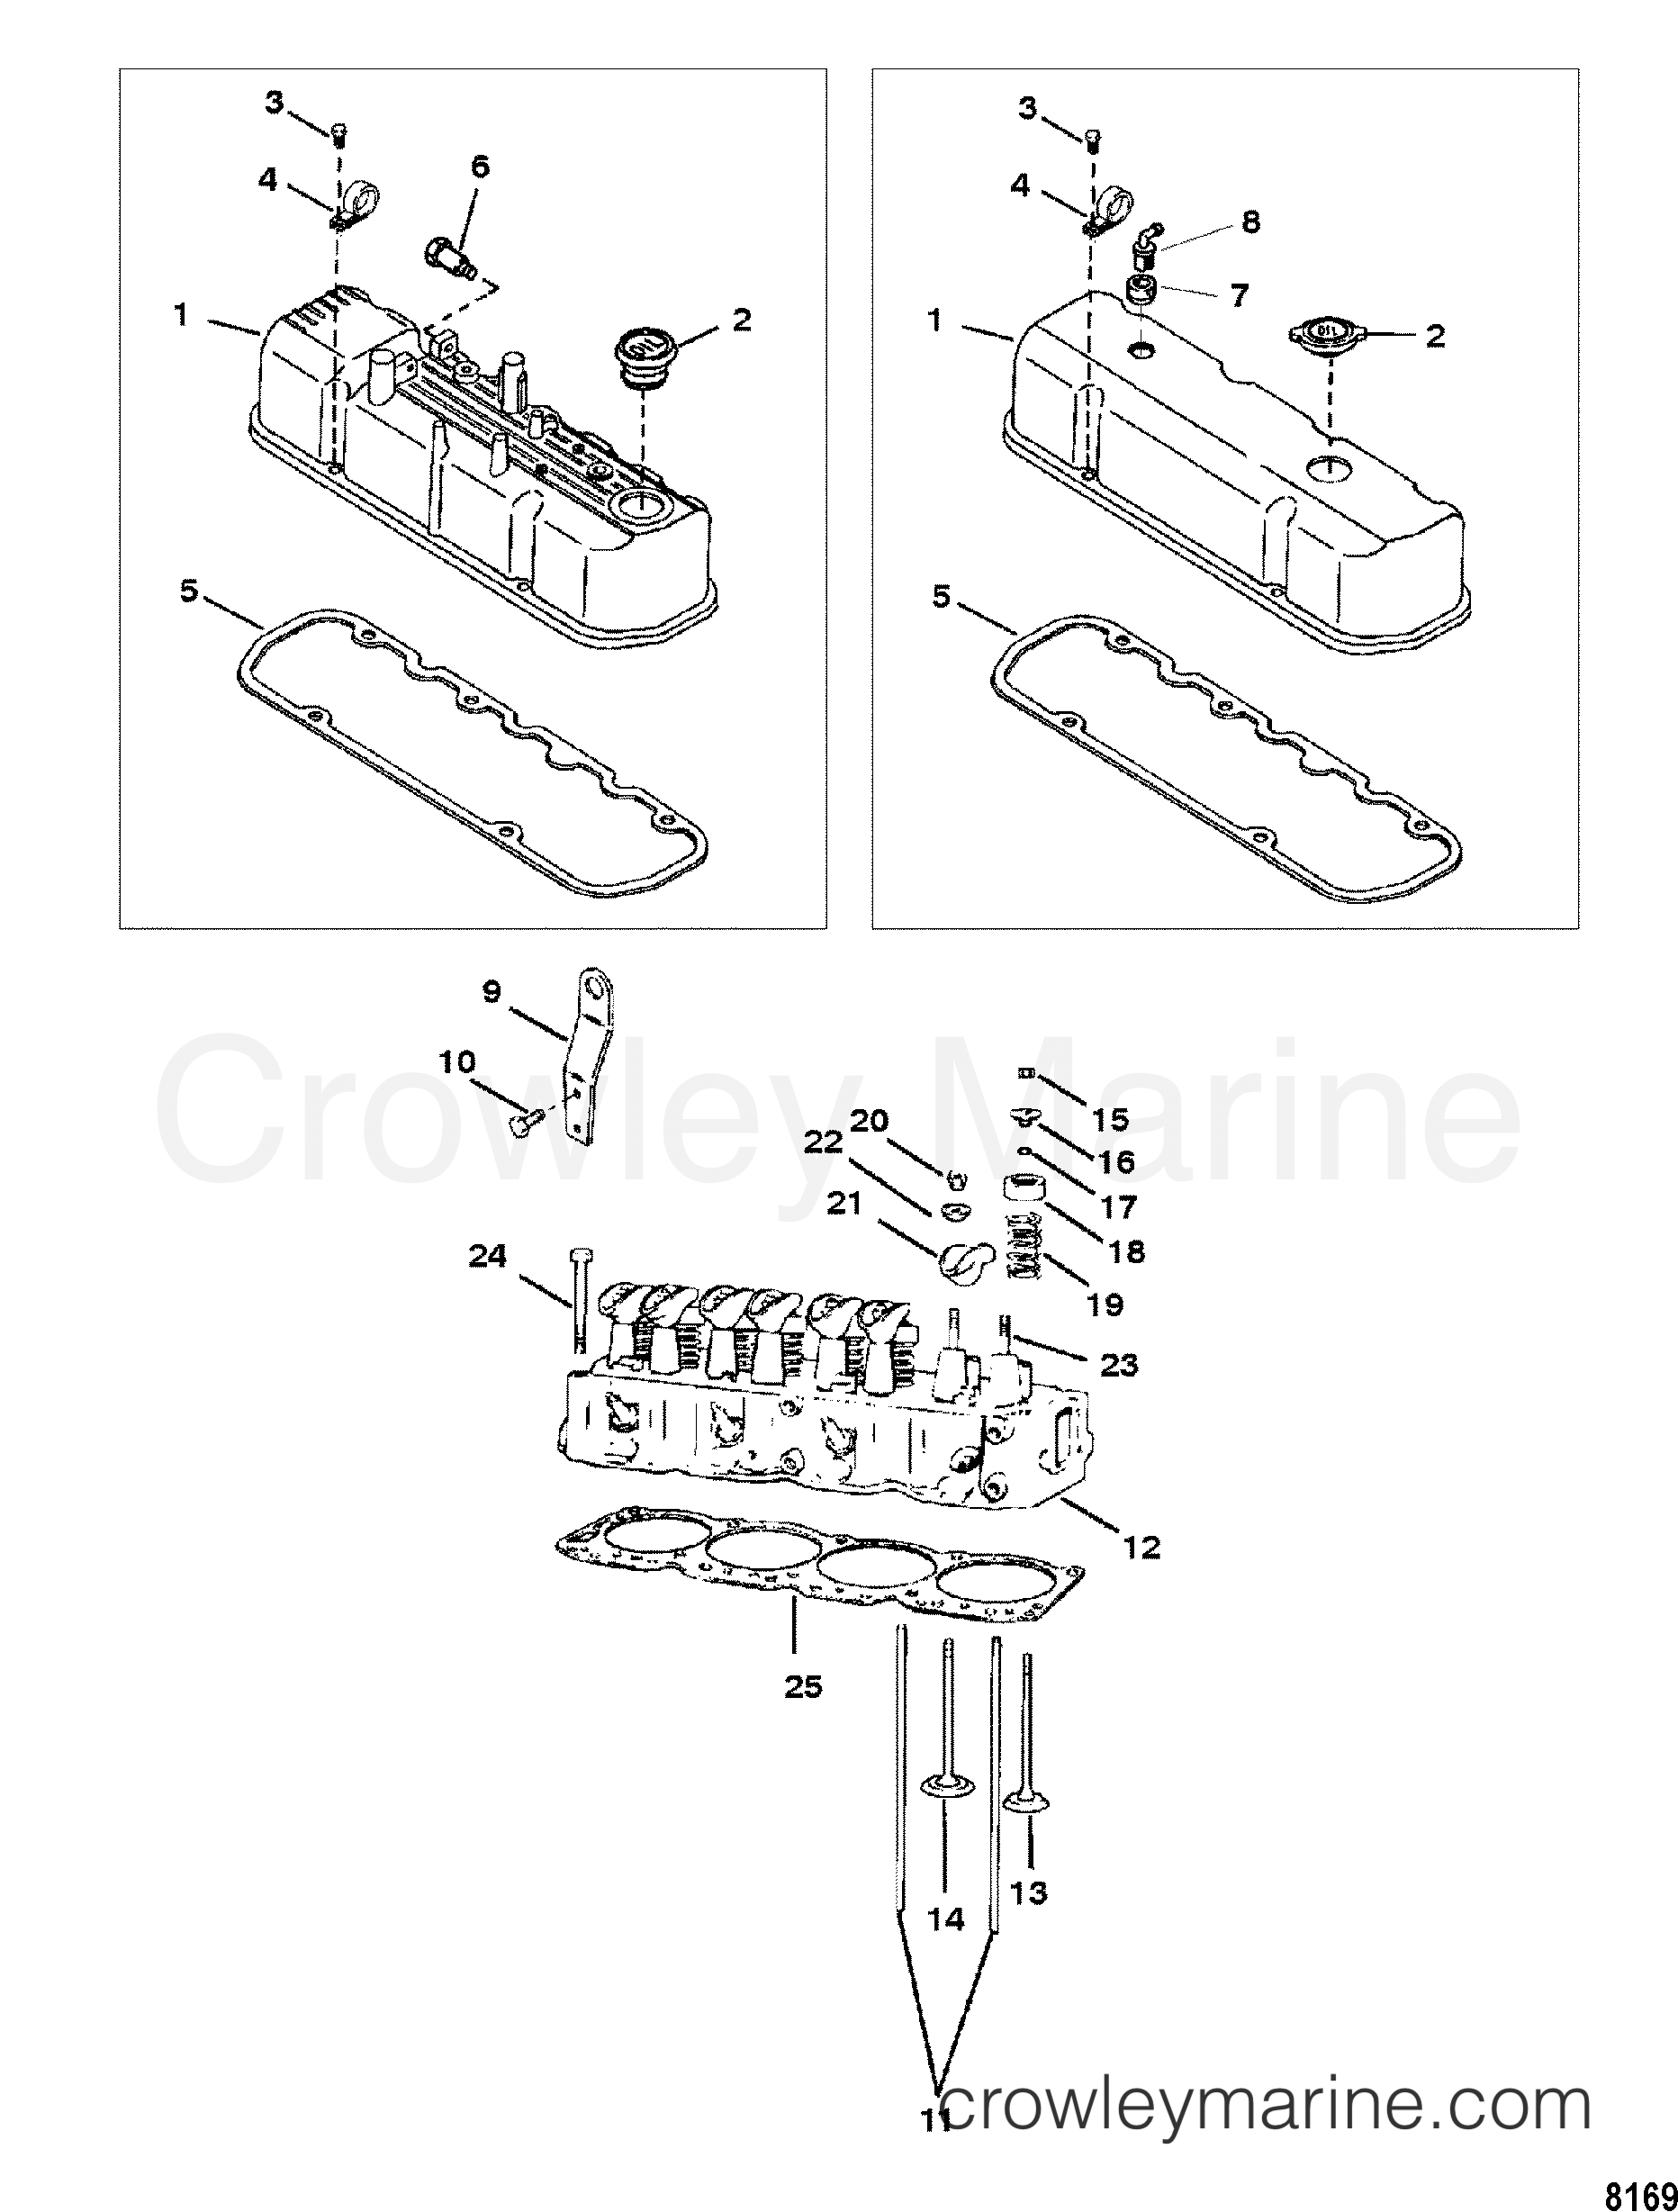 Mercruiser 30 Lx Engine Diagram Trusted Schematics Cylinder Head And Rocker Cover 1996 3 0lx Alpha Parts